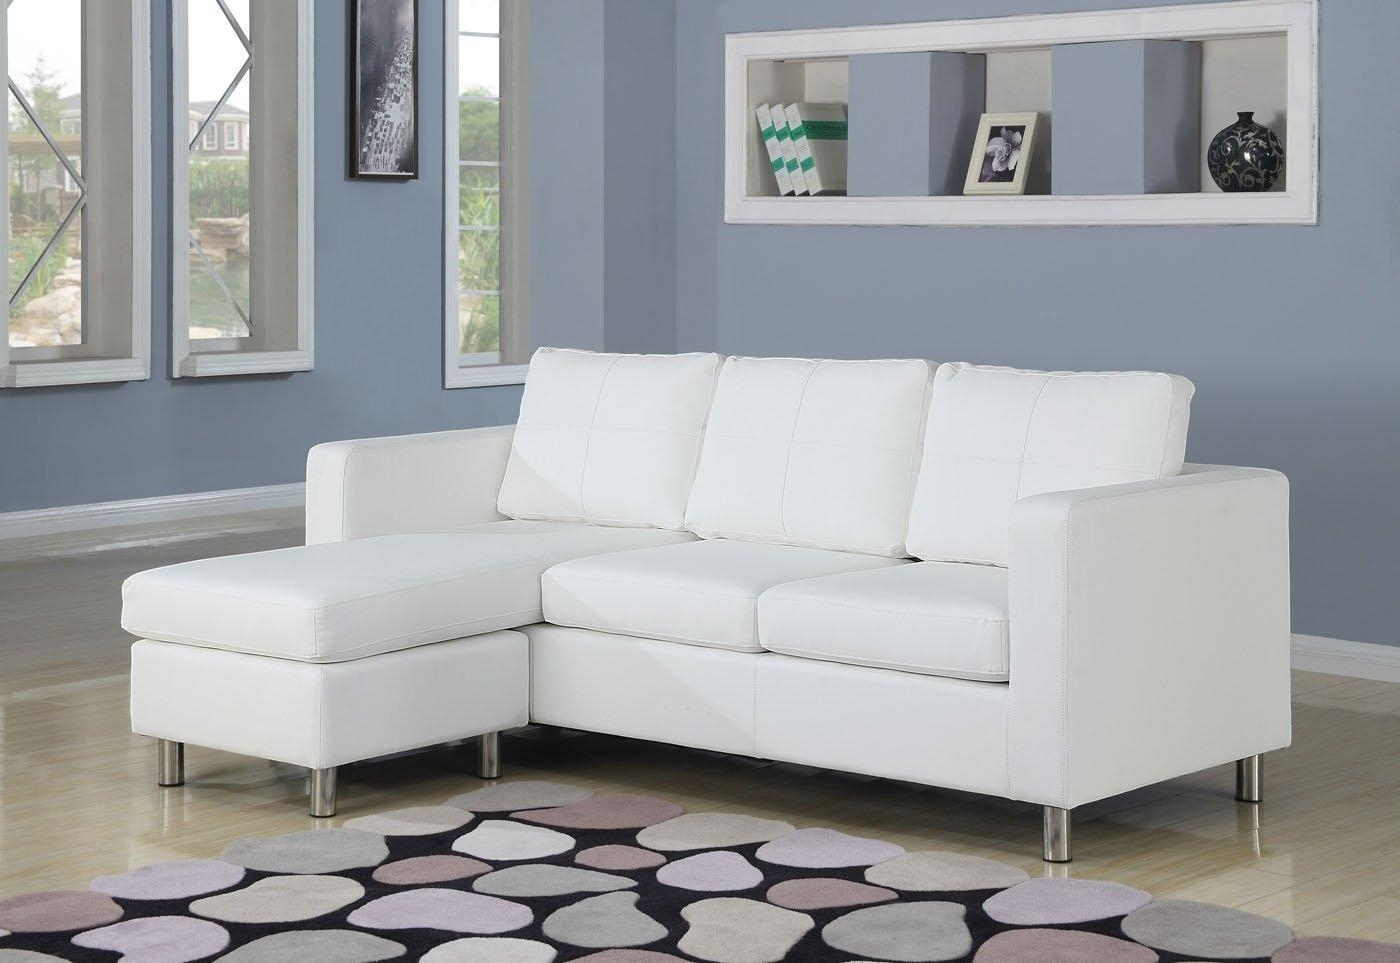 Modern Small Scale Sectional Sofa Modern Small Scale Sectional In Modern Small Sectional Sofas (Image 11 of 20)